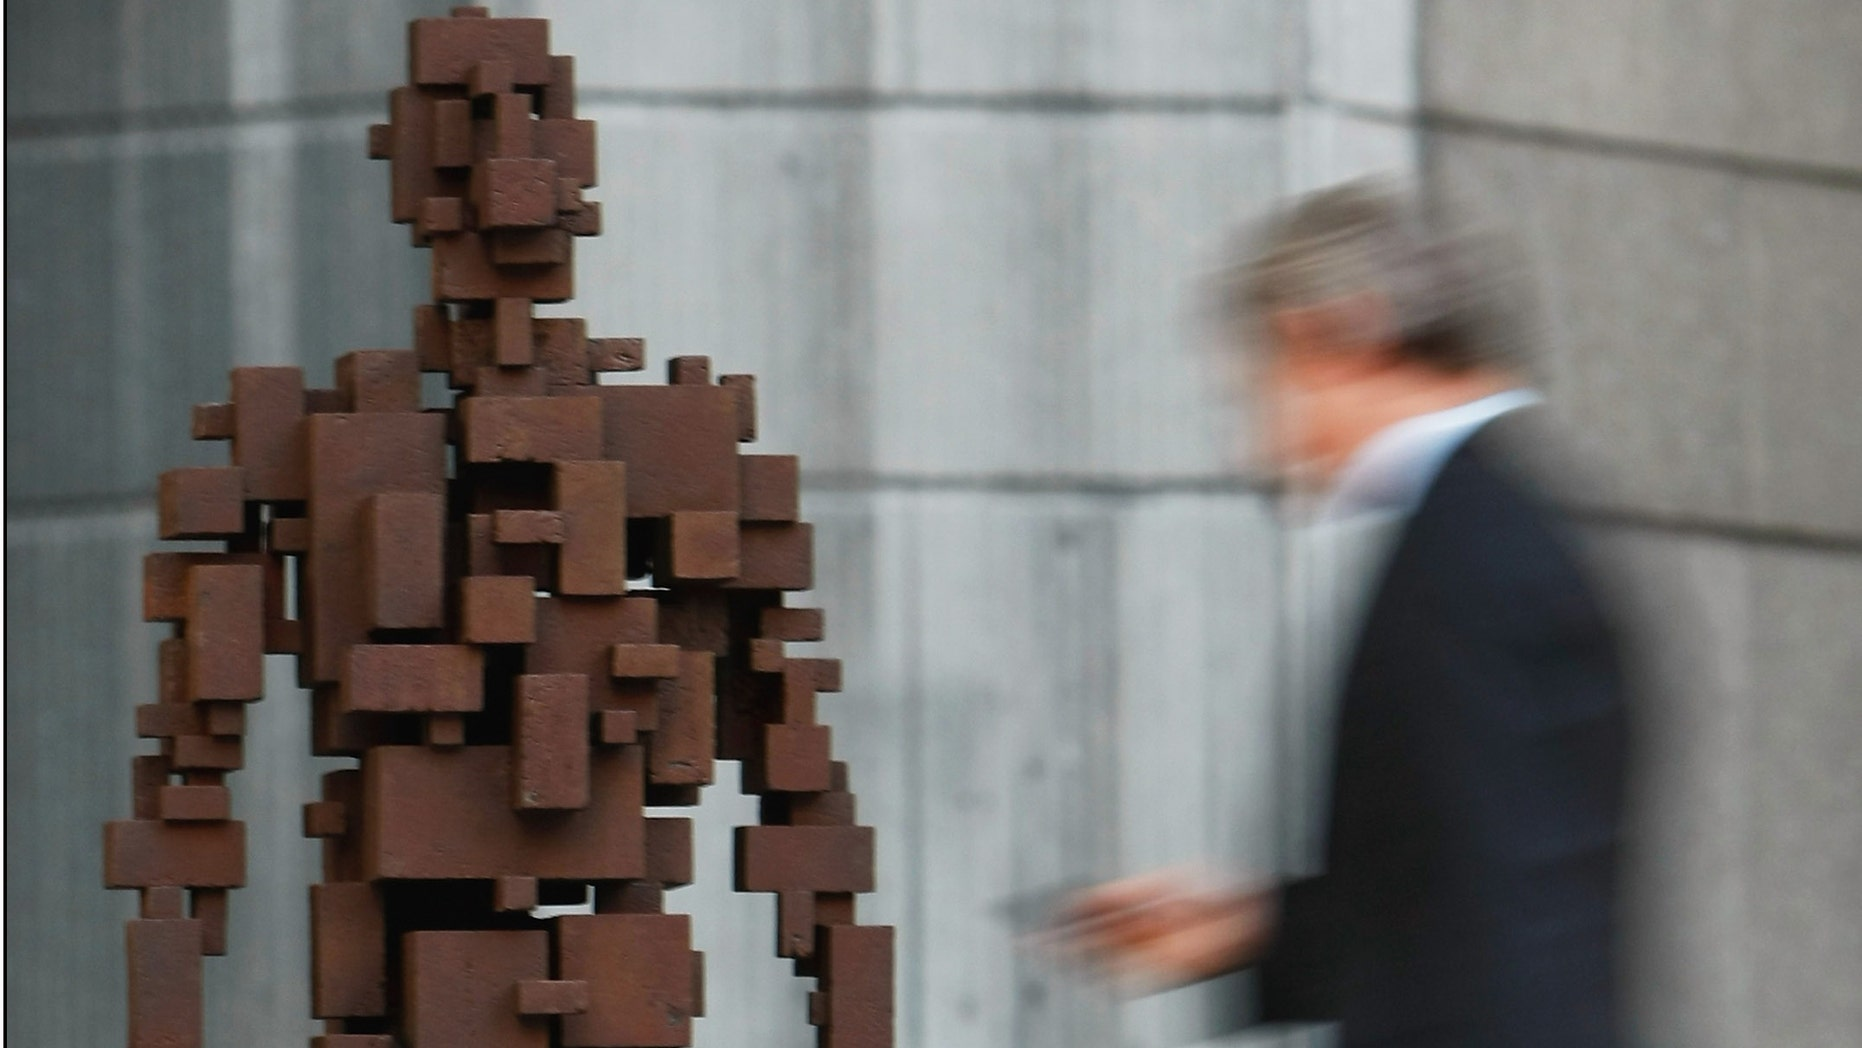 Artist Antony Gormley's sculpture called Resolution, which is in London, England.